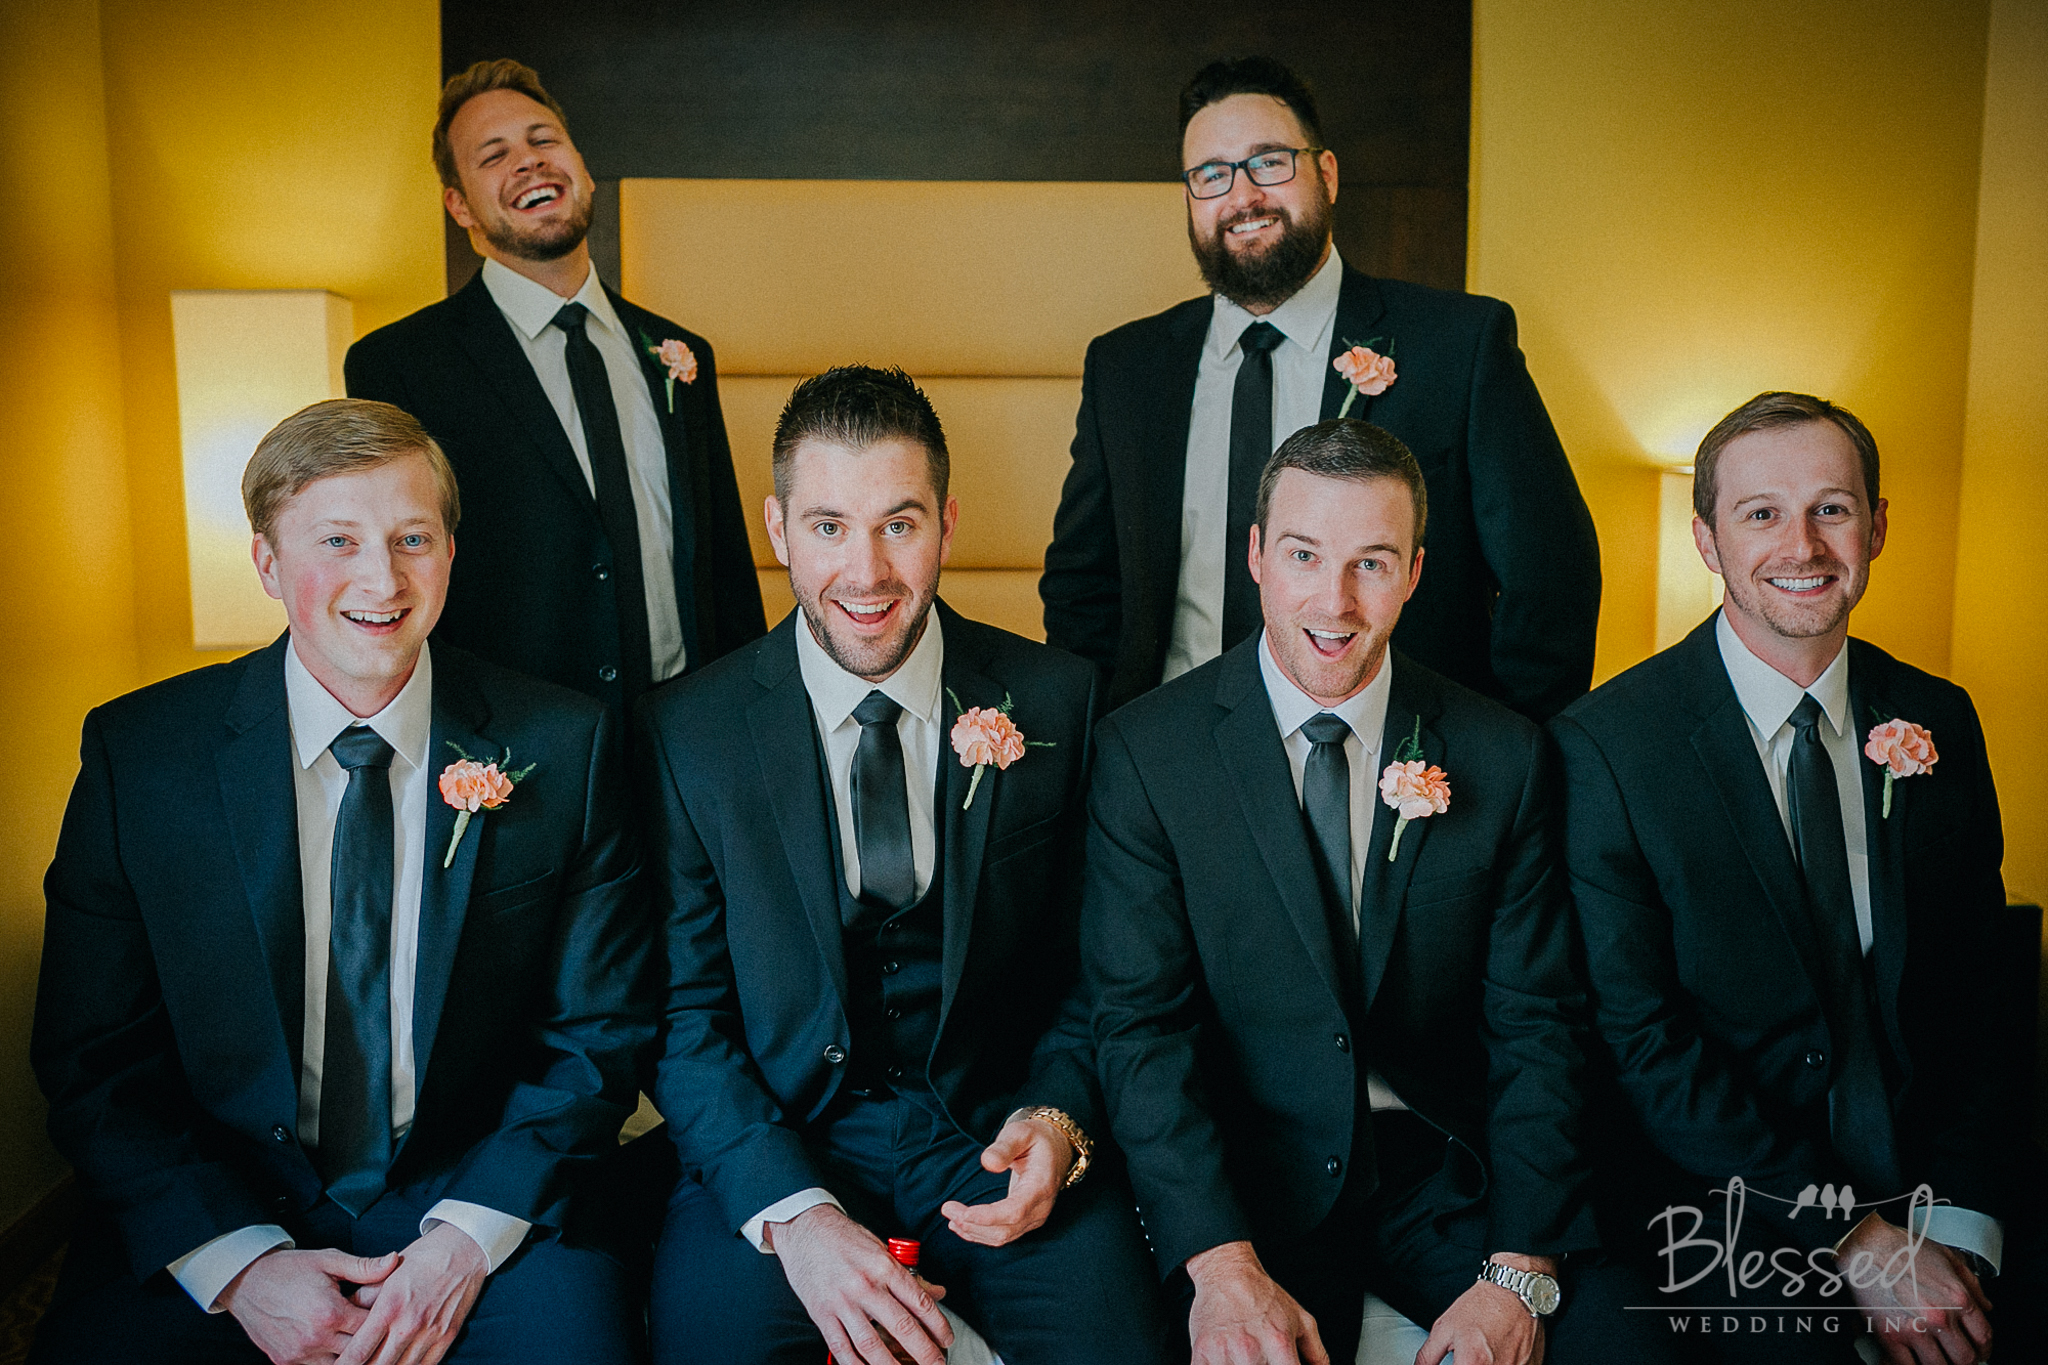 Destination Wedding Photography Minnesota By Blessed Wedding Photographers-20.jpg